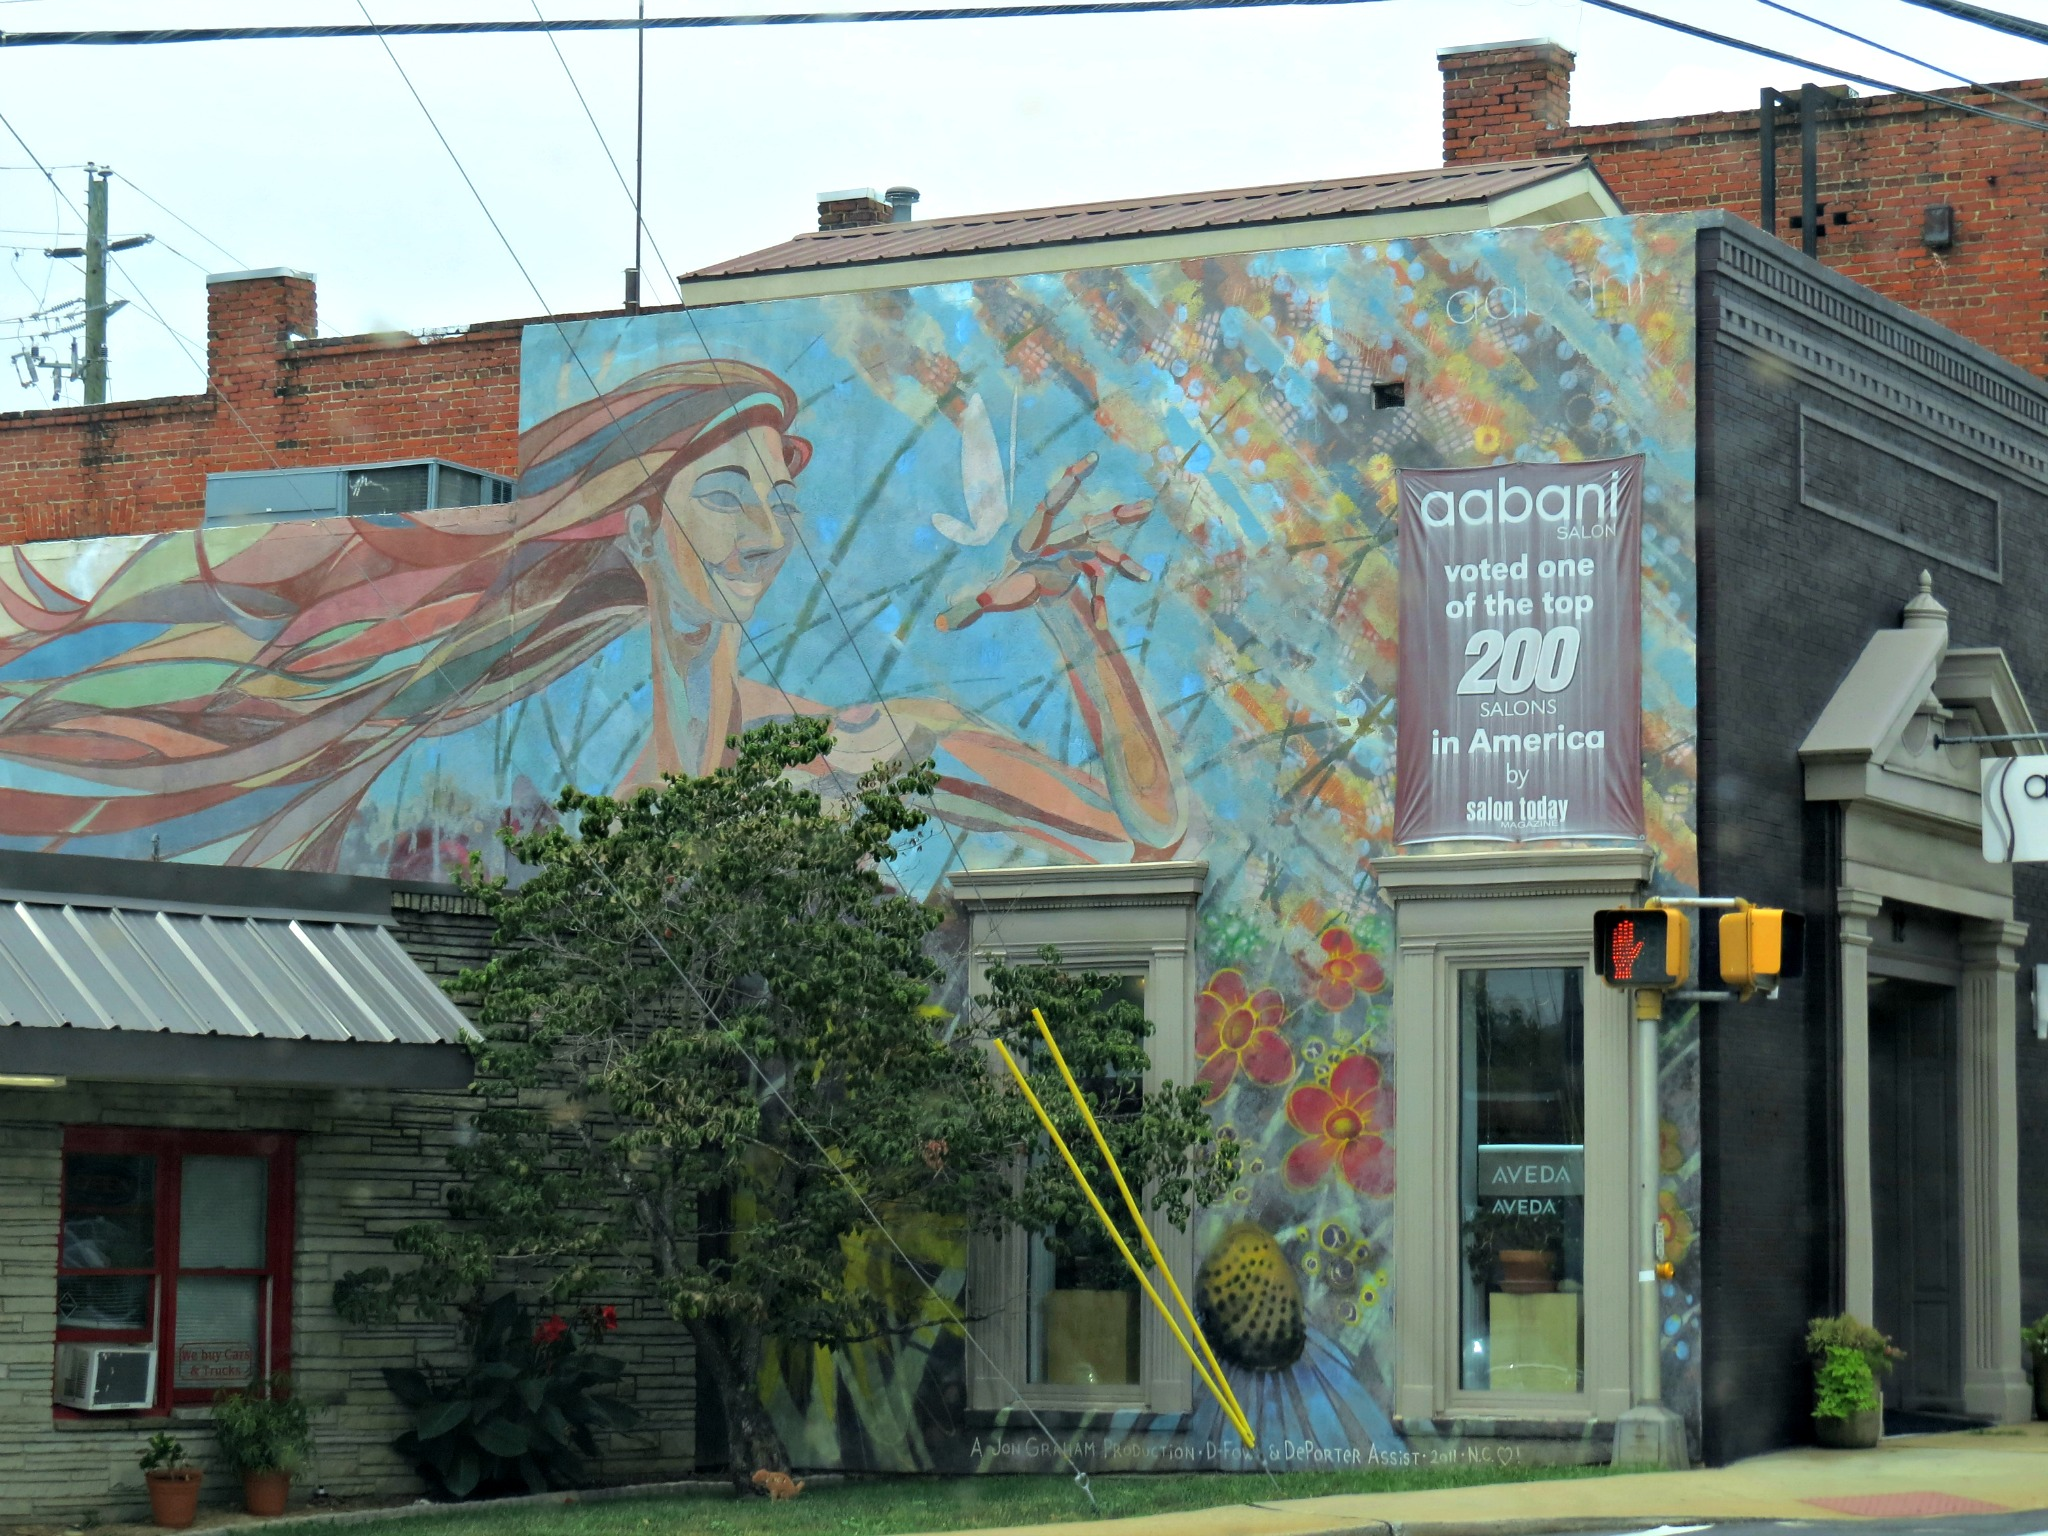 Town Of Weaverville Aabani Mural